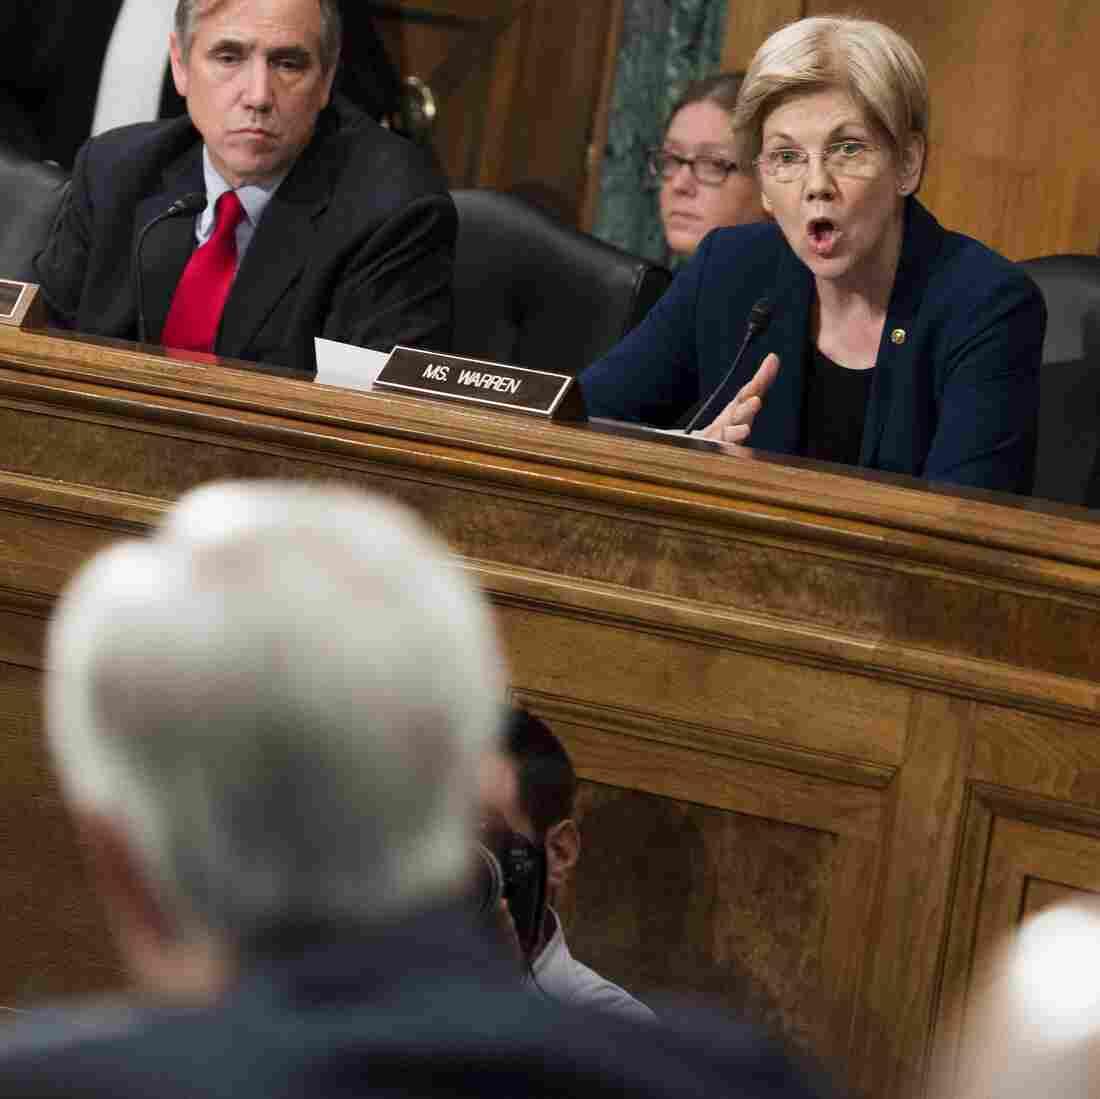 'You Should Resign': Watch Sen. Elizabeth Warren Grill Wells Fargo CEO John Stumpf